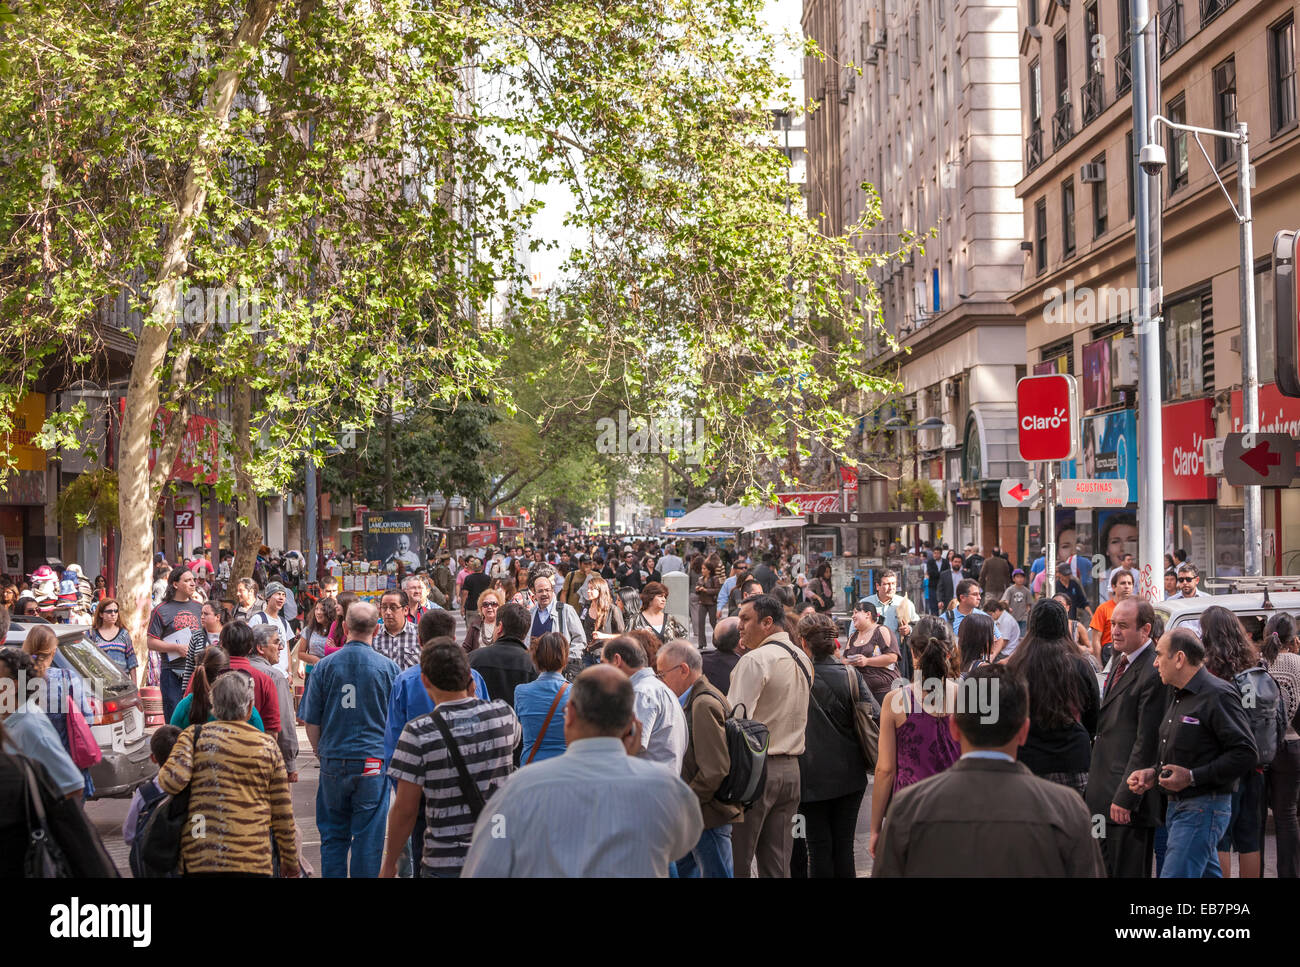 Santiago Chile, Paseo Ahumada. Crowds of people, shoppers, walking talking in the main shopping street of Santiago Stock Photo